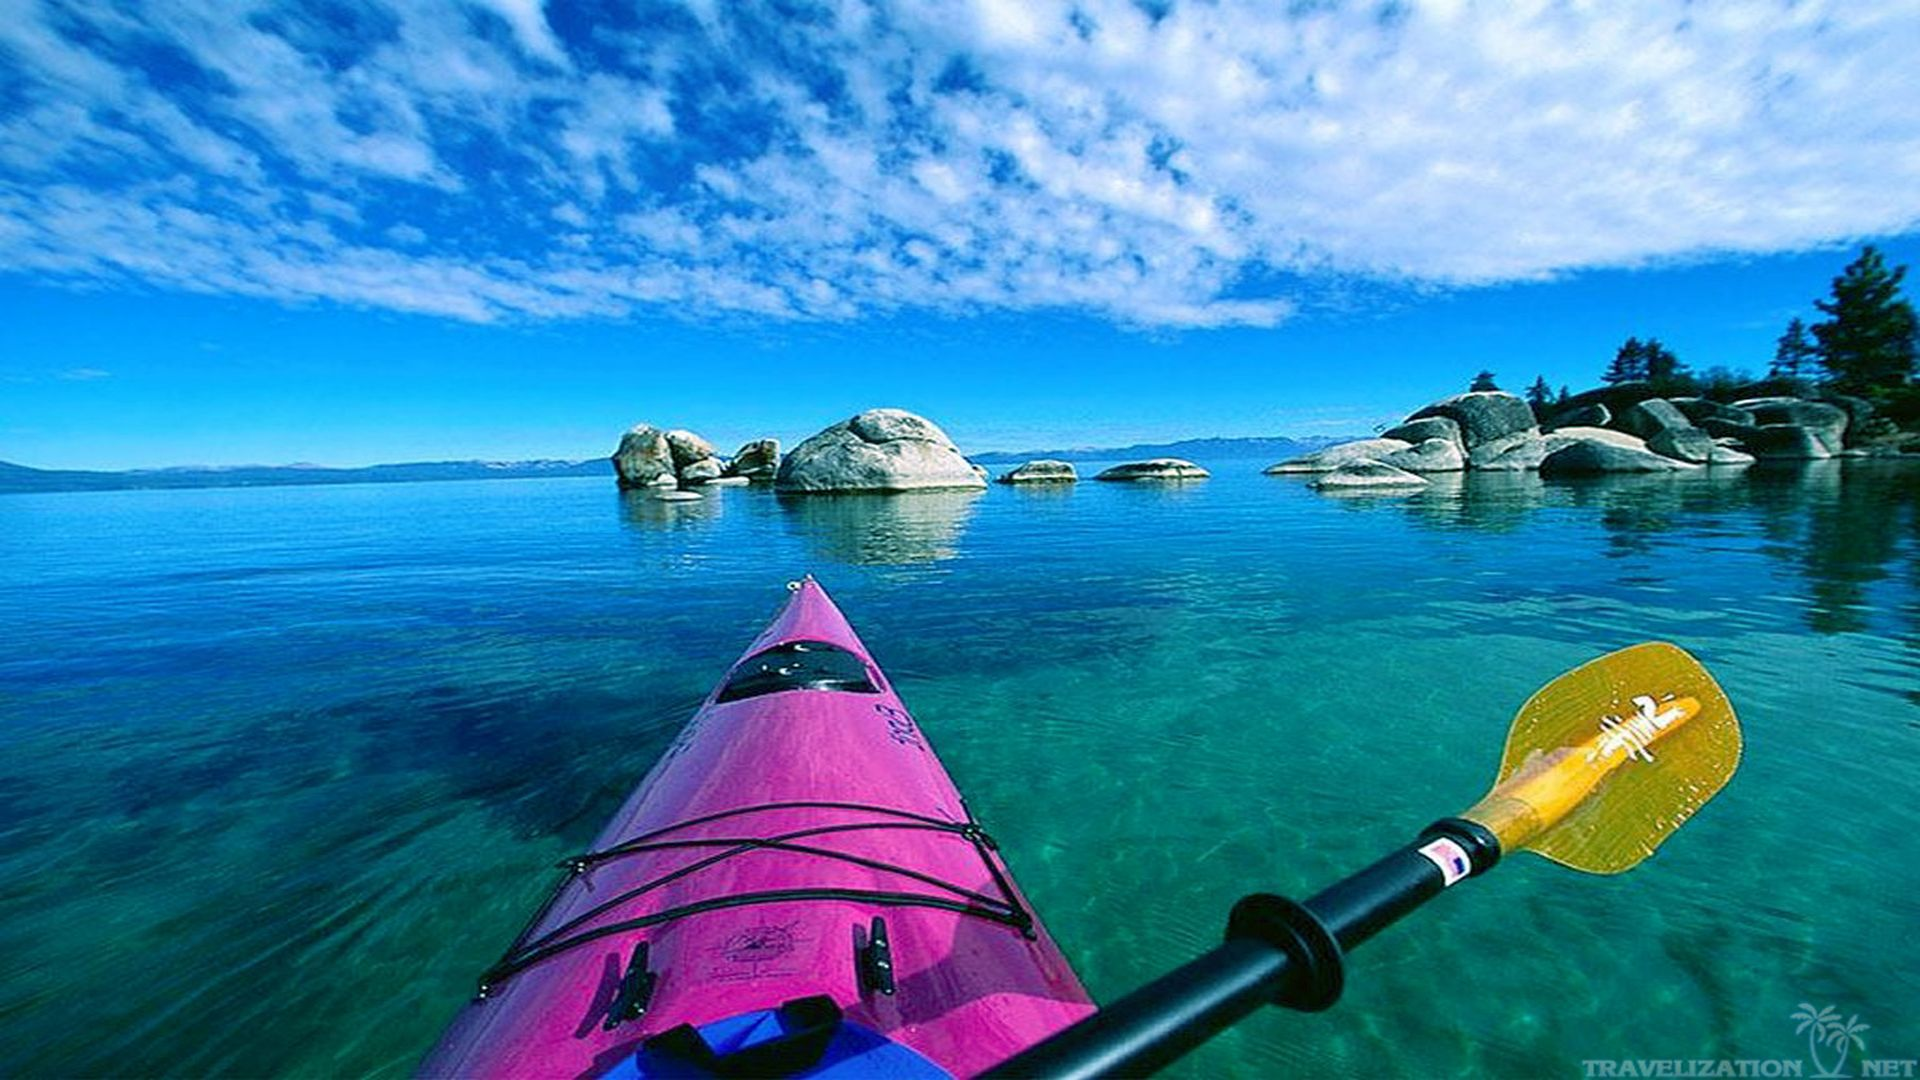 Amazing Kayak Wallpaper